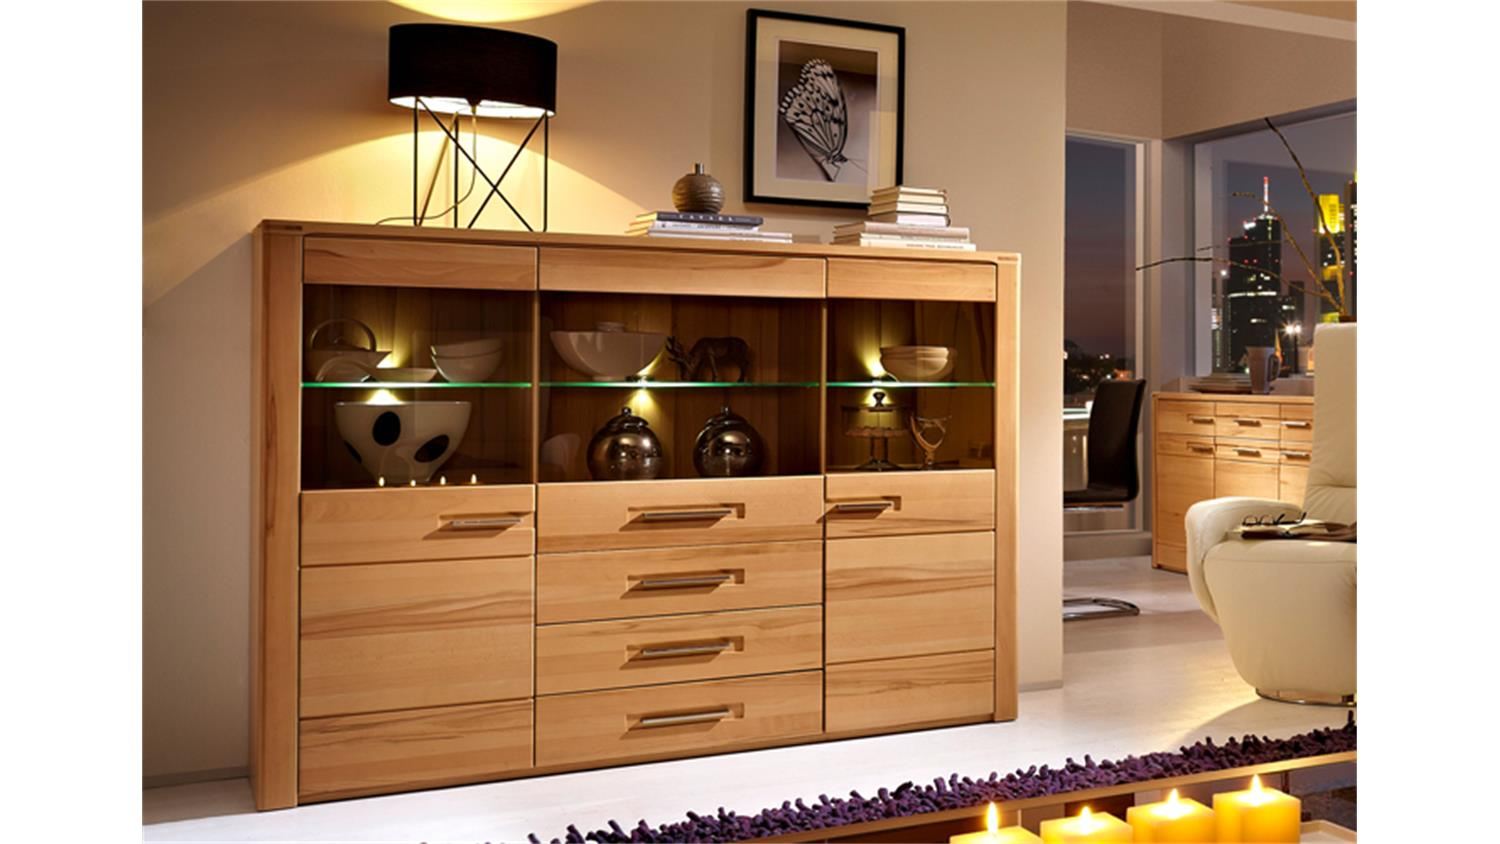 highboard nature plus schrank kernbuche massiv lackiert. Black Bedroom Furniture Sets. Home Design Ideas